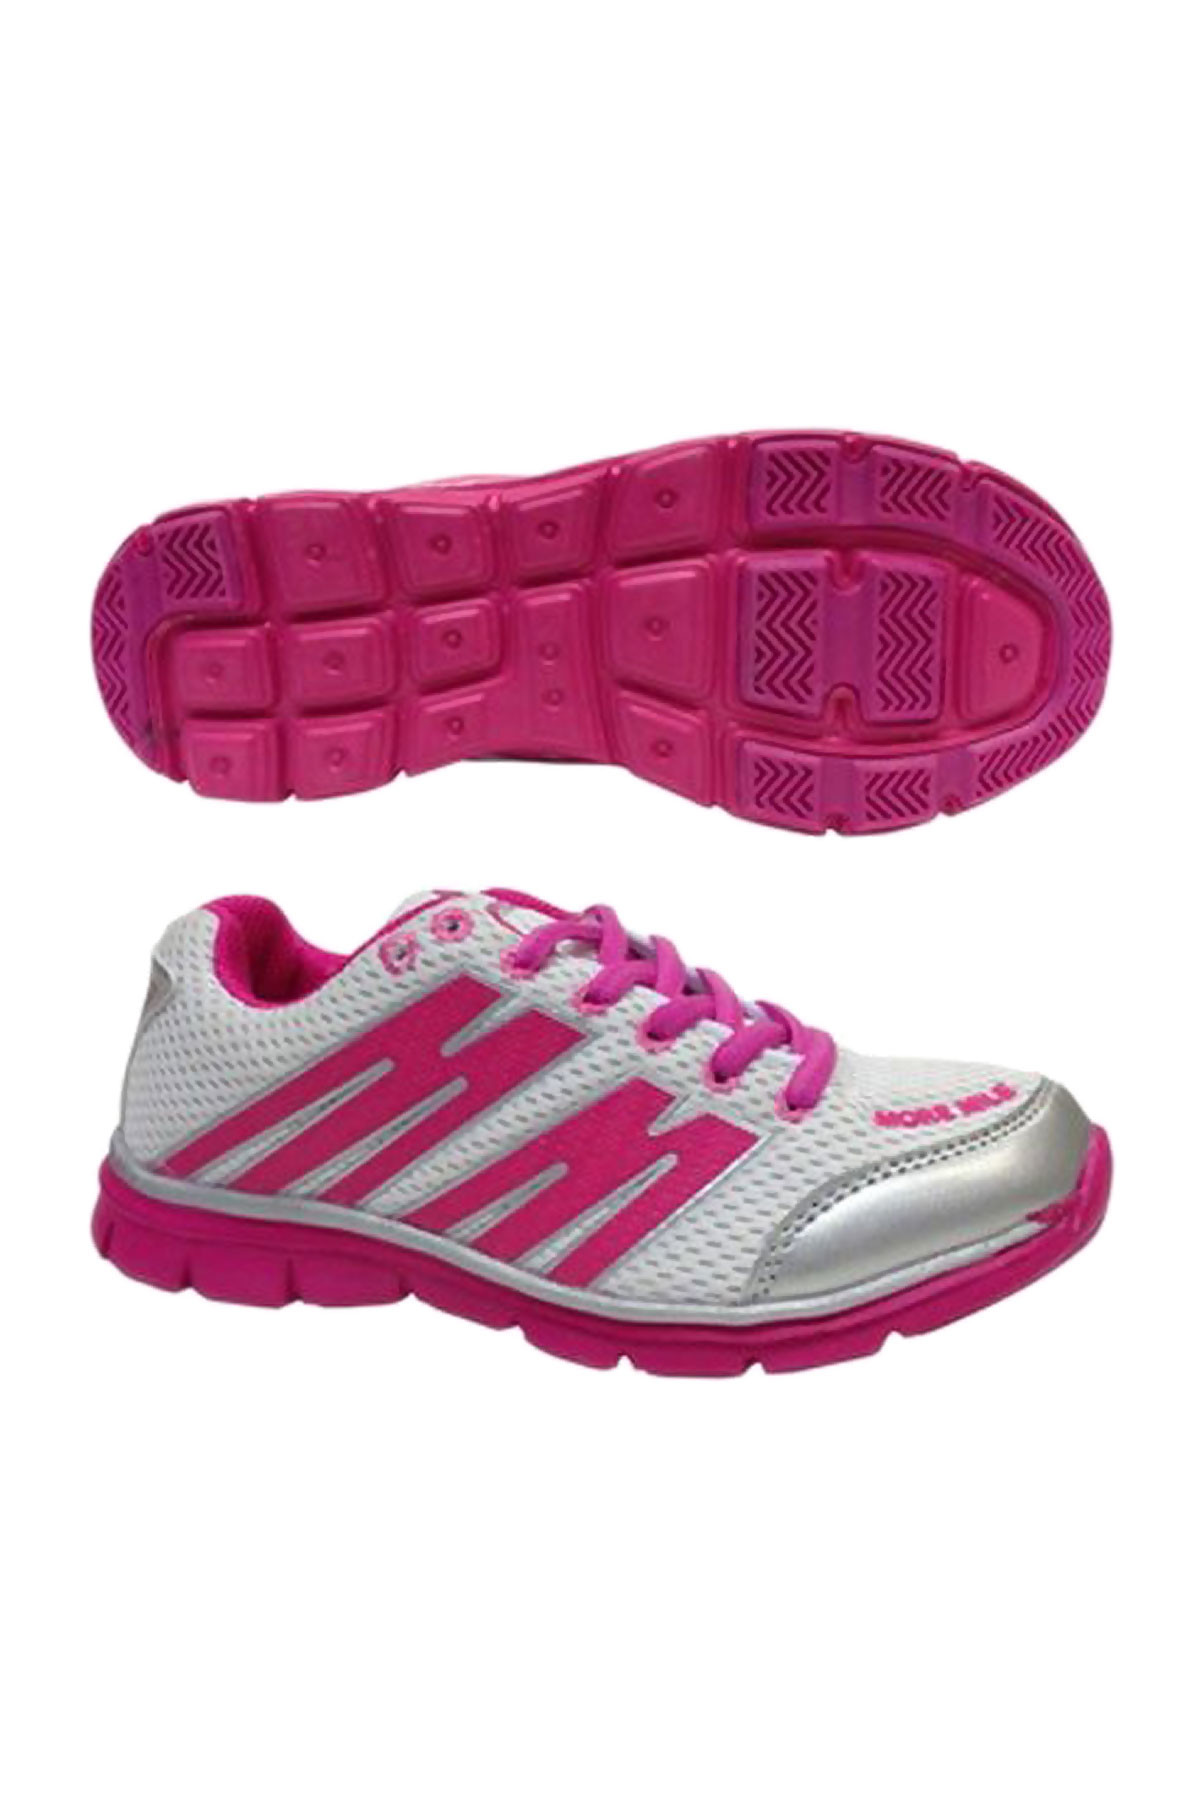 4f8a46962c5 Детски маратонки MORE MILE Oslo Childrens Training Shoes MORE MILE ...